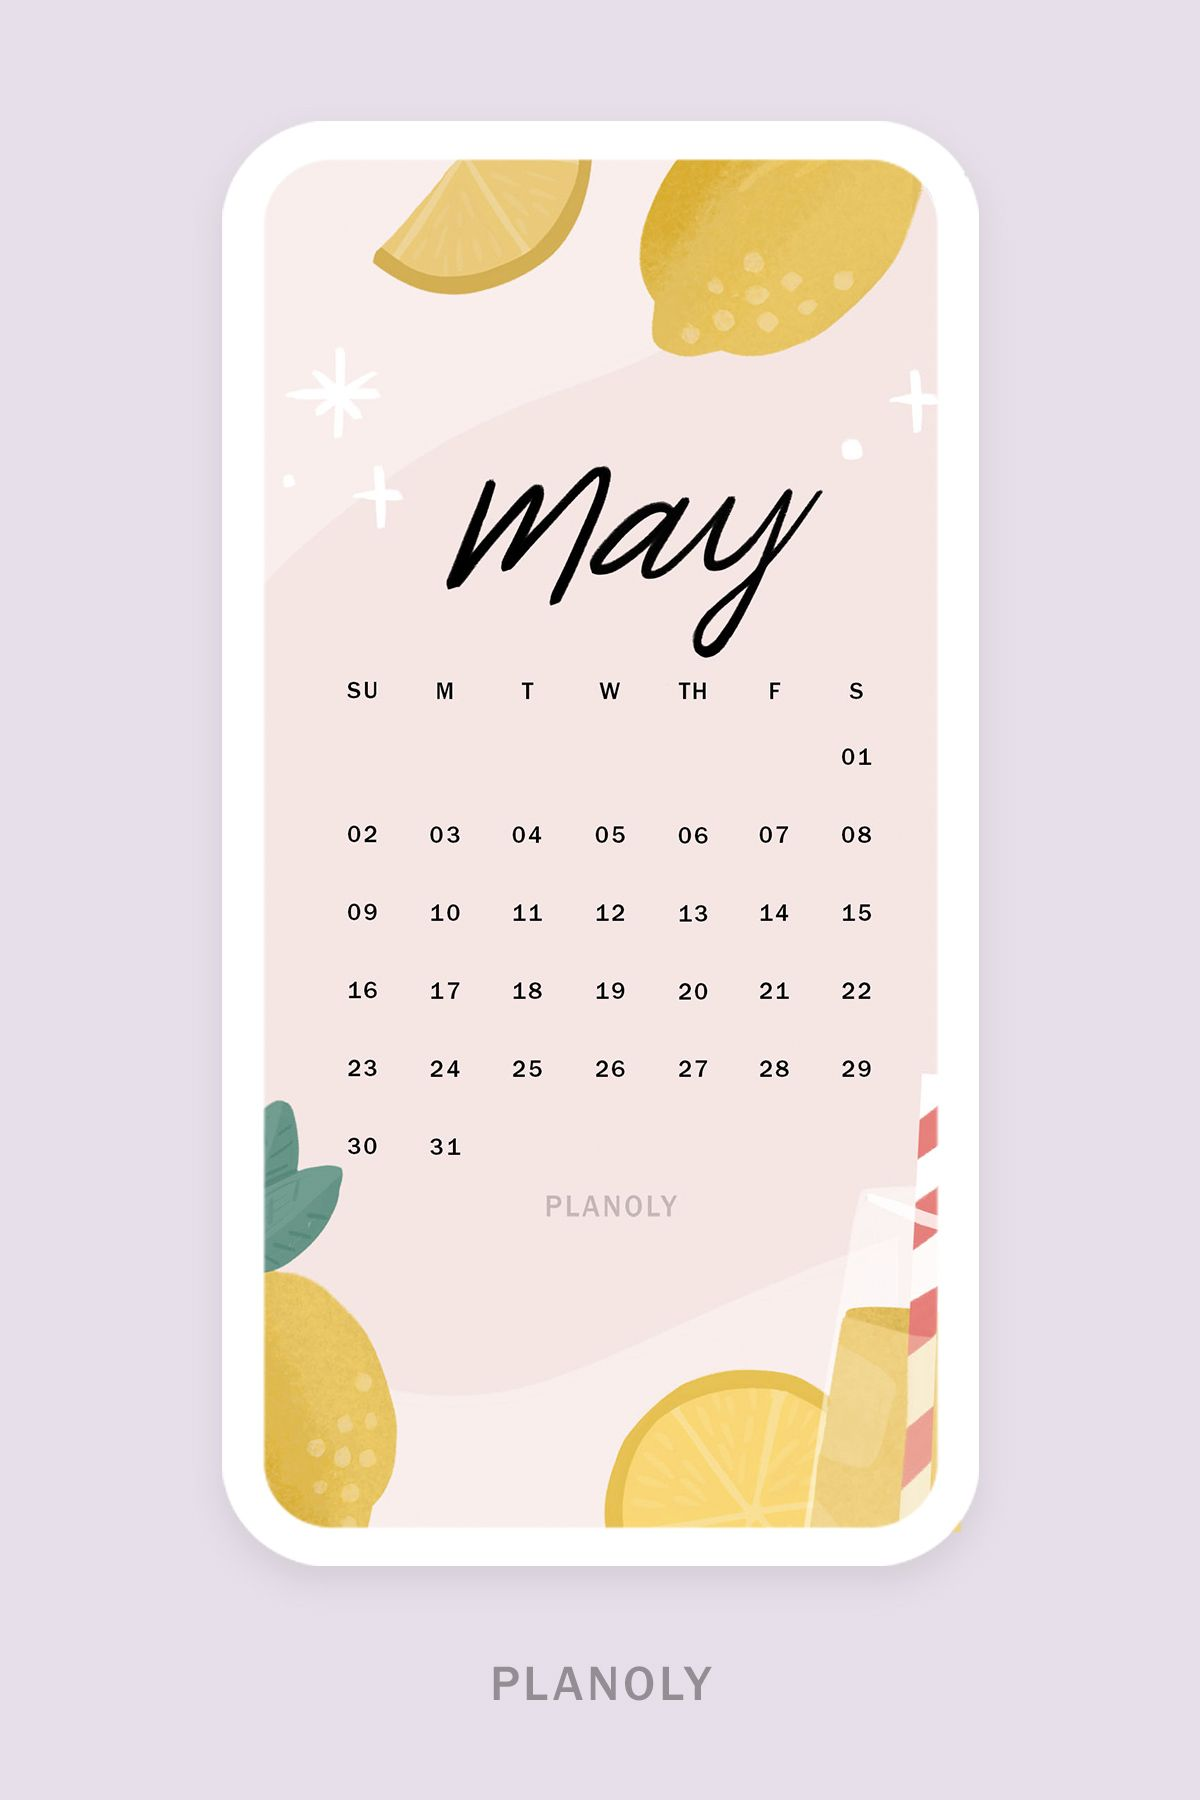 PLANOLY-IG Feed-Q2 Content Calendars-Image 5